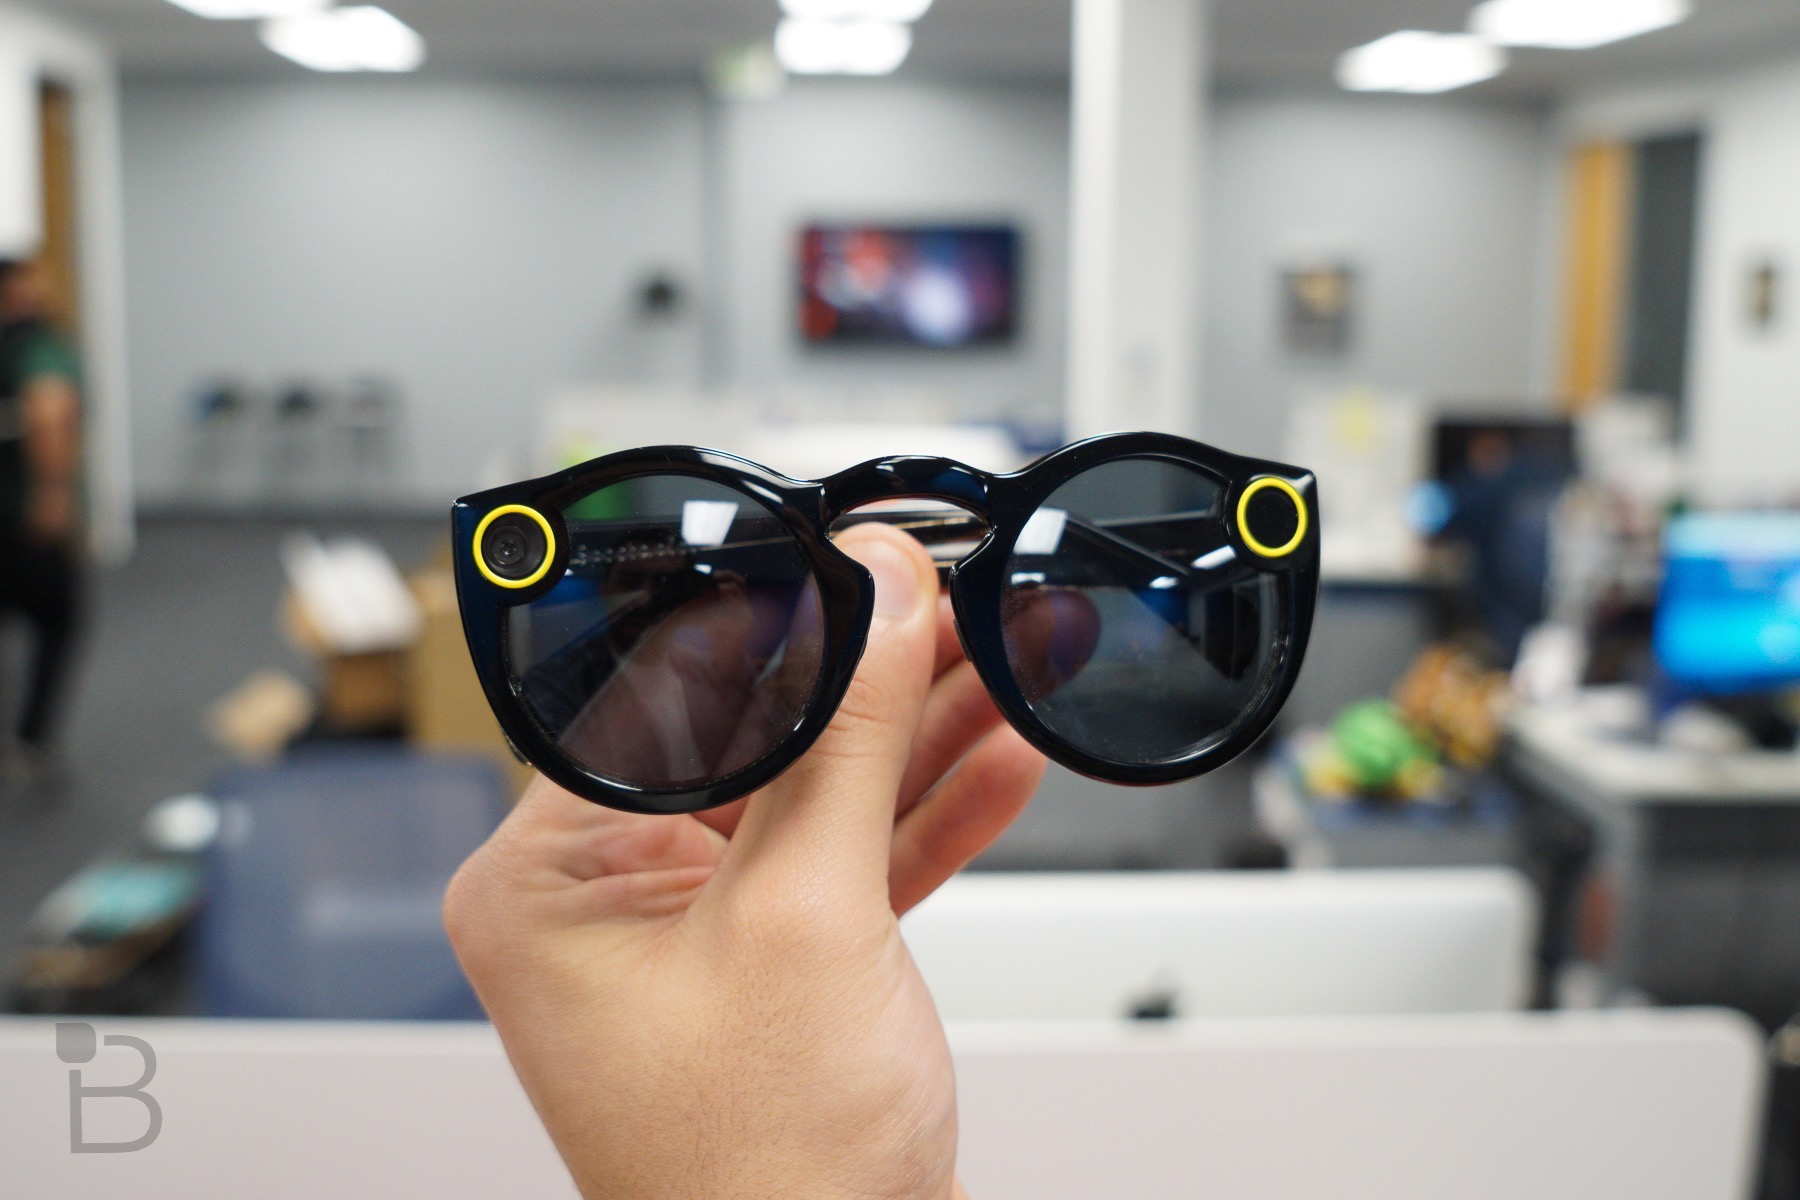 9442e70993 Snapchat-Spectacles-4. Snapchat is reportedly planning to release two new  models of camera-equipped glasses ...